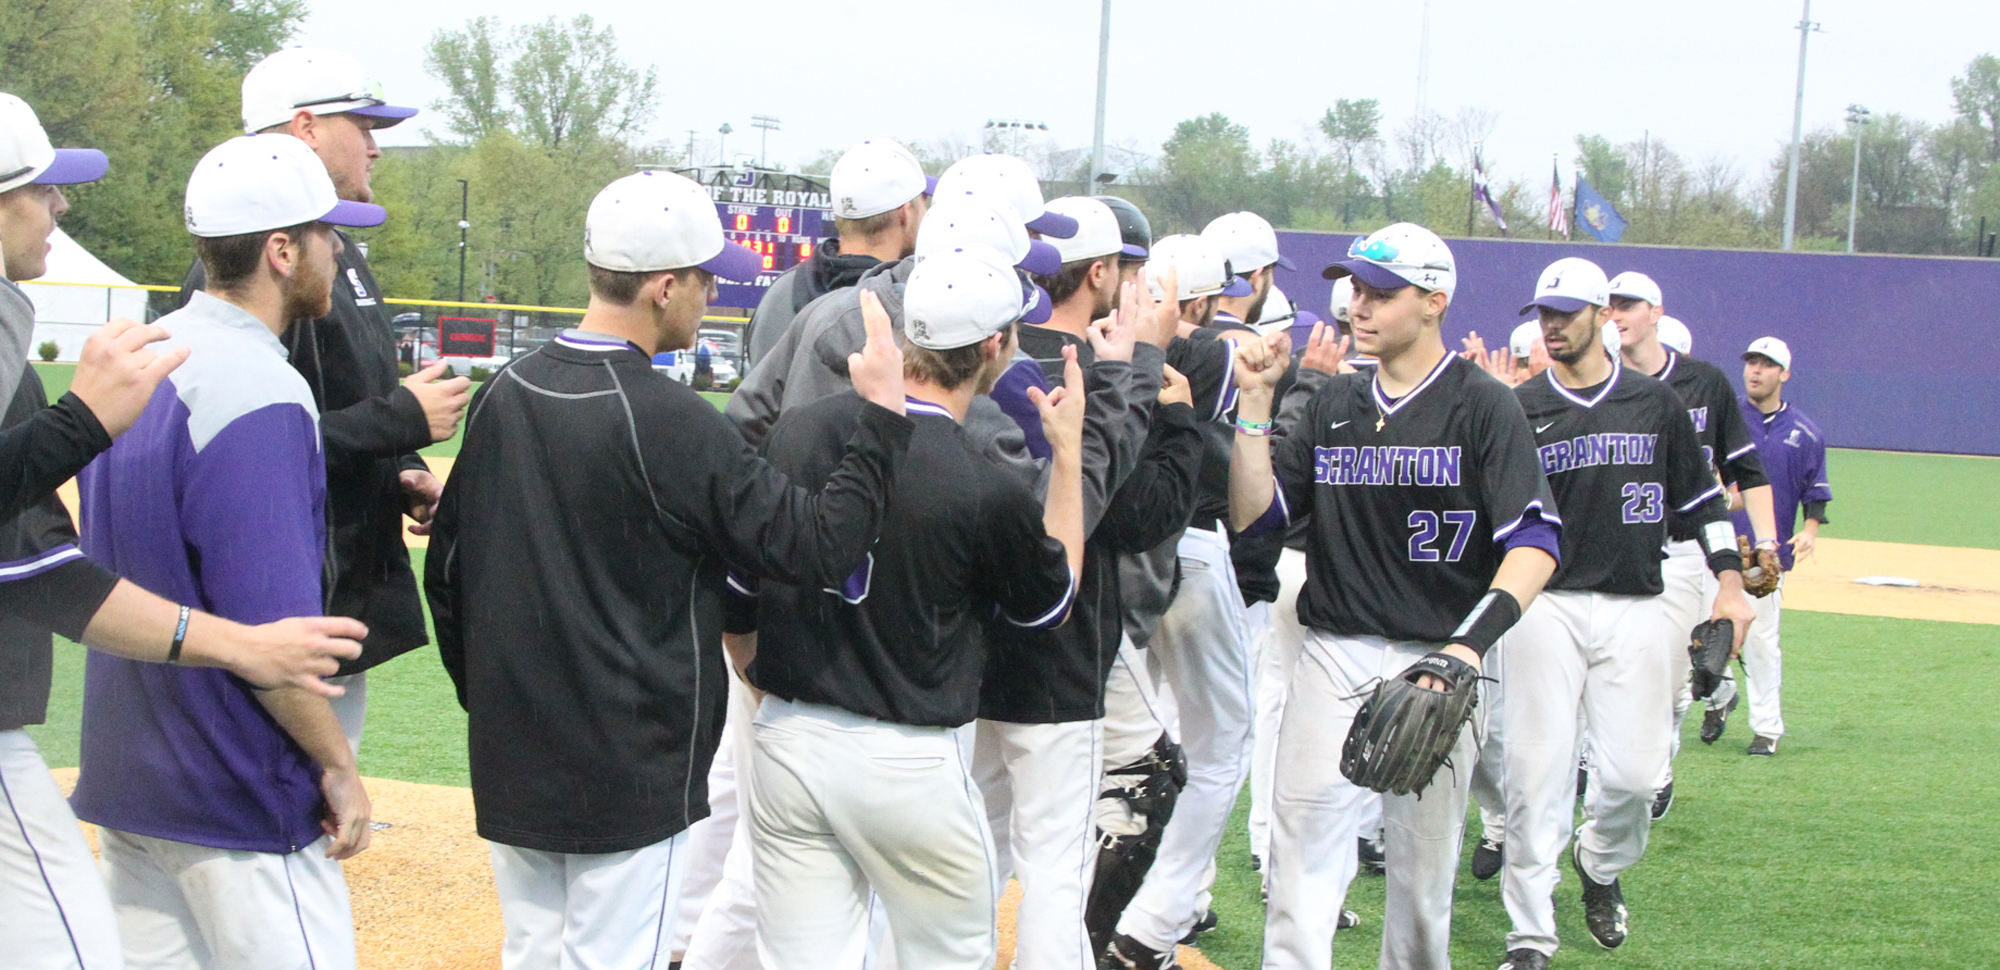 The baseball team advanced to the final of the Landmark Conference Championship with an 8-4 win over Catholic on Saturday.